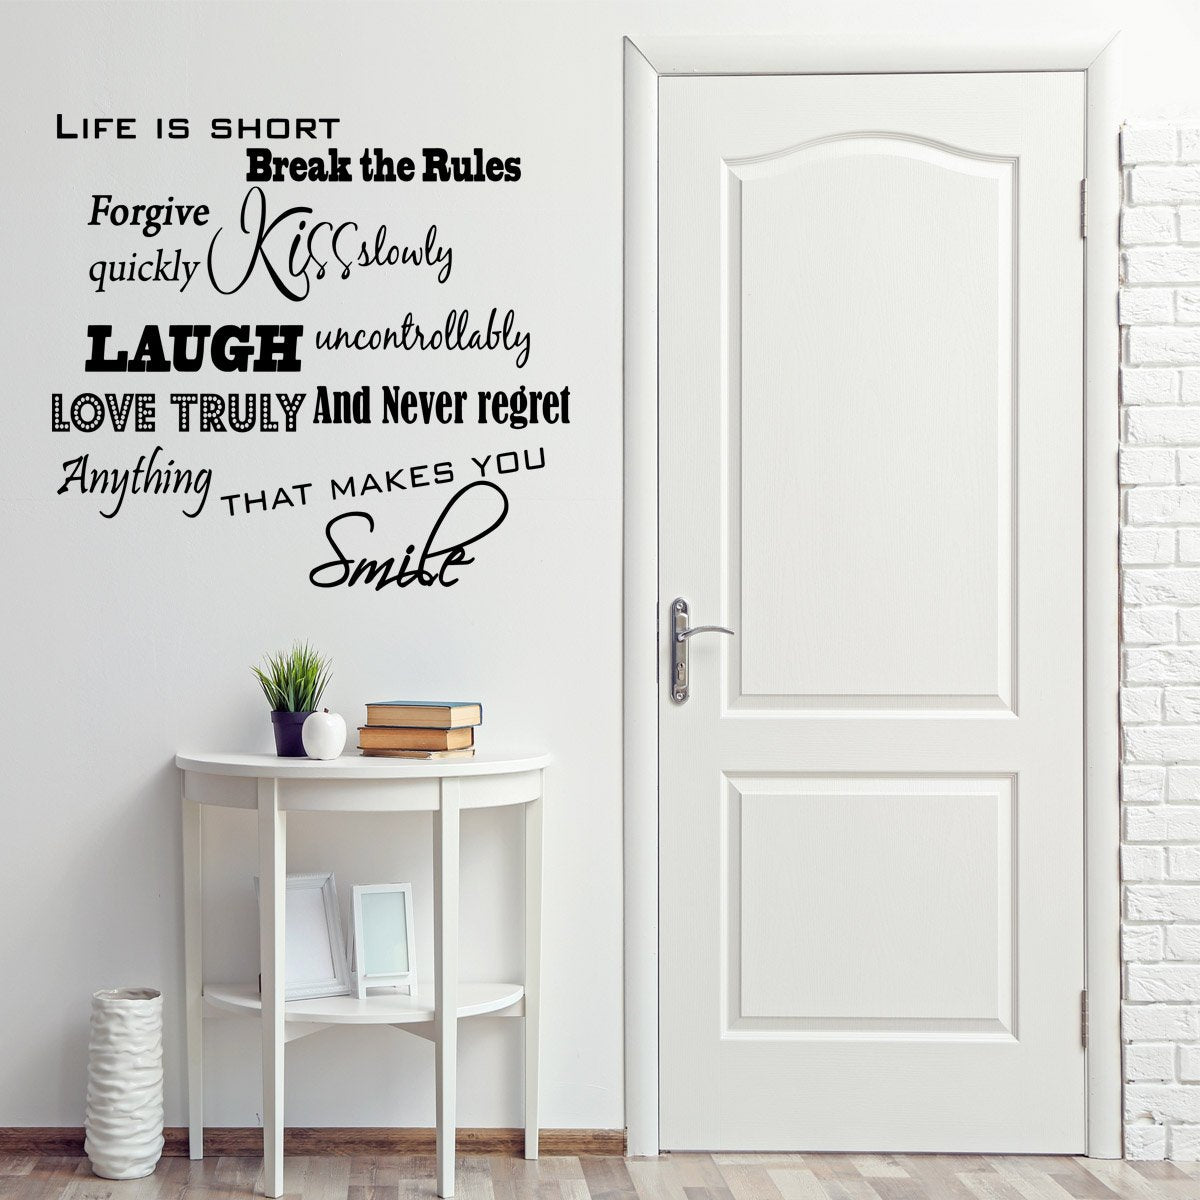 VWAQ Life is Short, Break the Rules, Forgive Quickly, Kiss Slowly Wall Decal - VWAQ Vinyl Wall Art Quotes and Prints